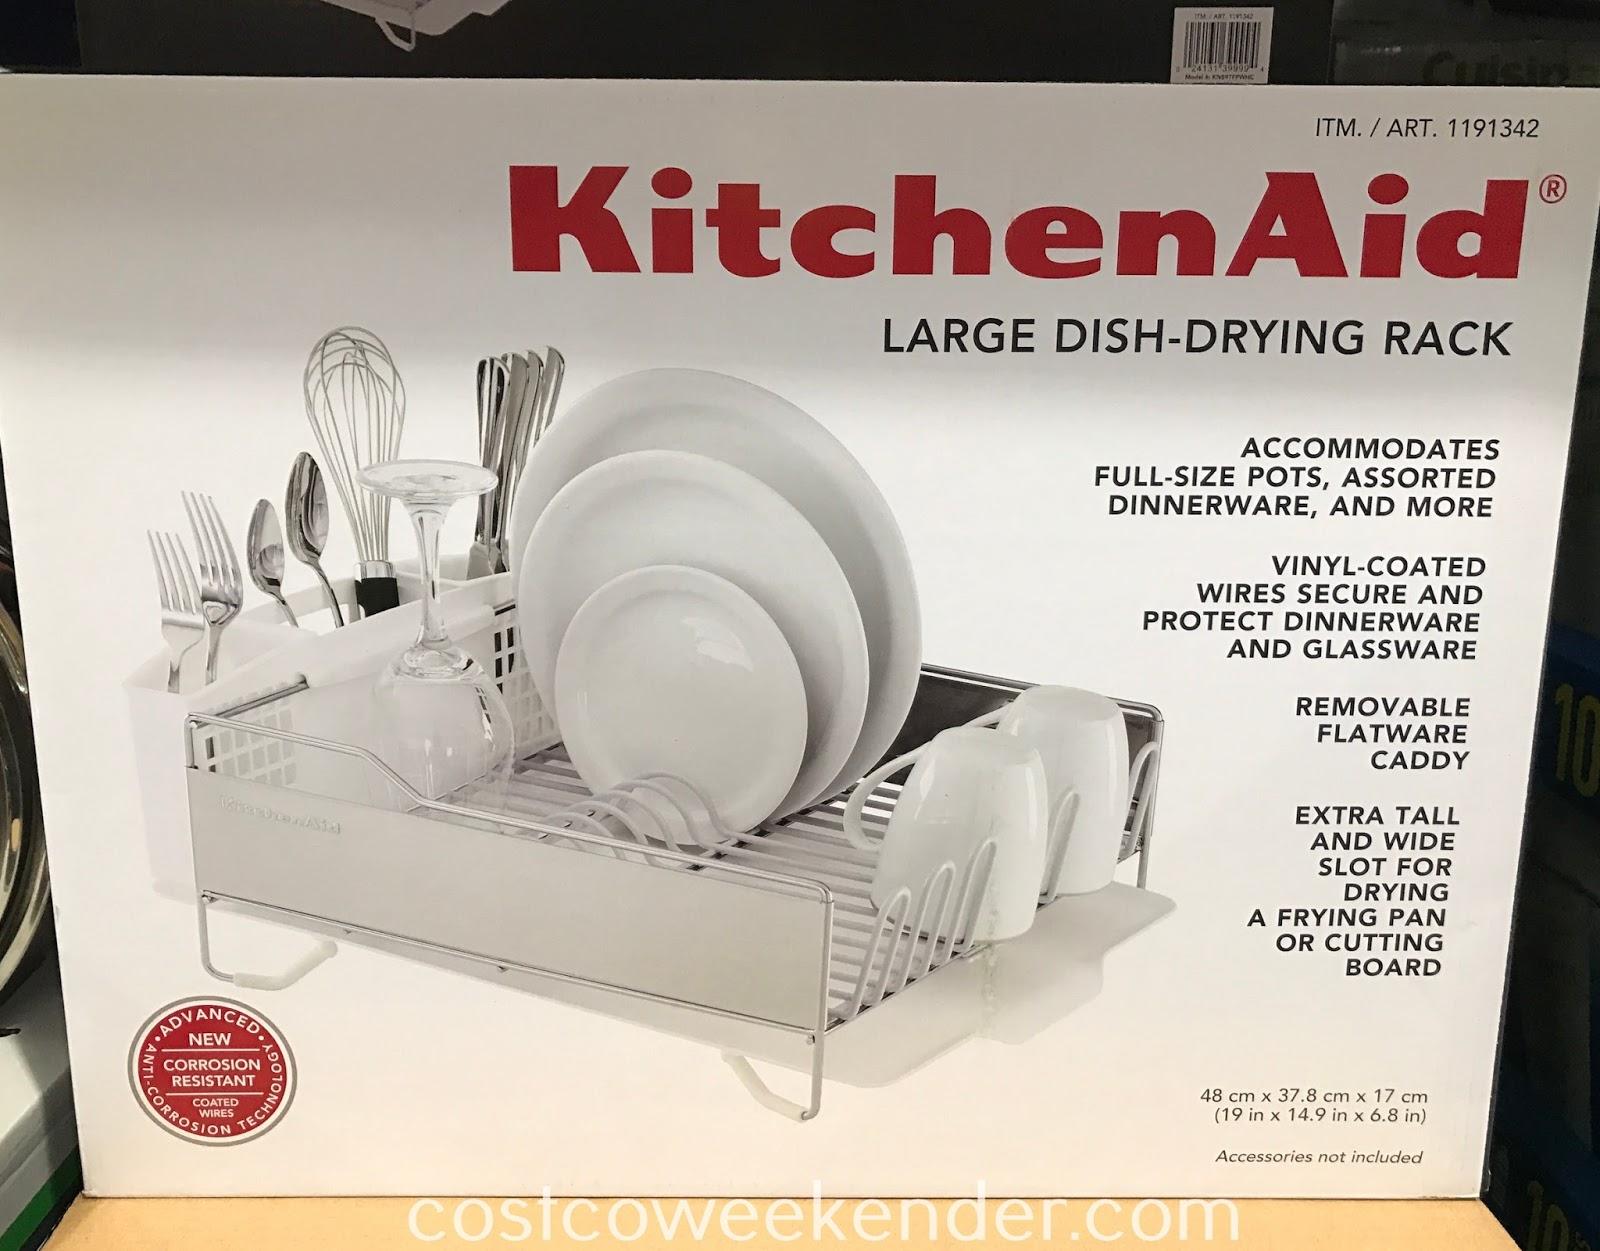 Dry and protect your precious dinnerware with the KitchenAid Large Dish-Drying Rack